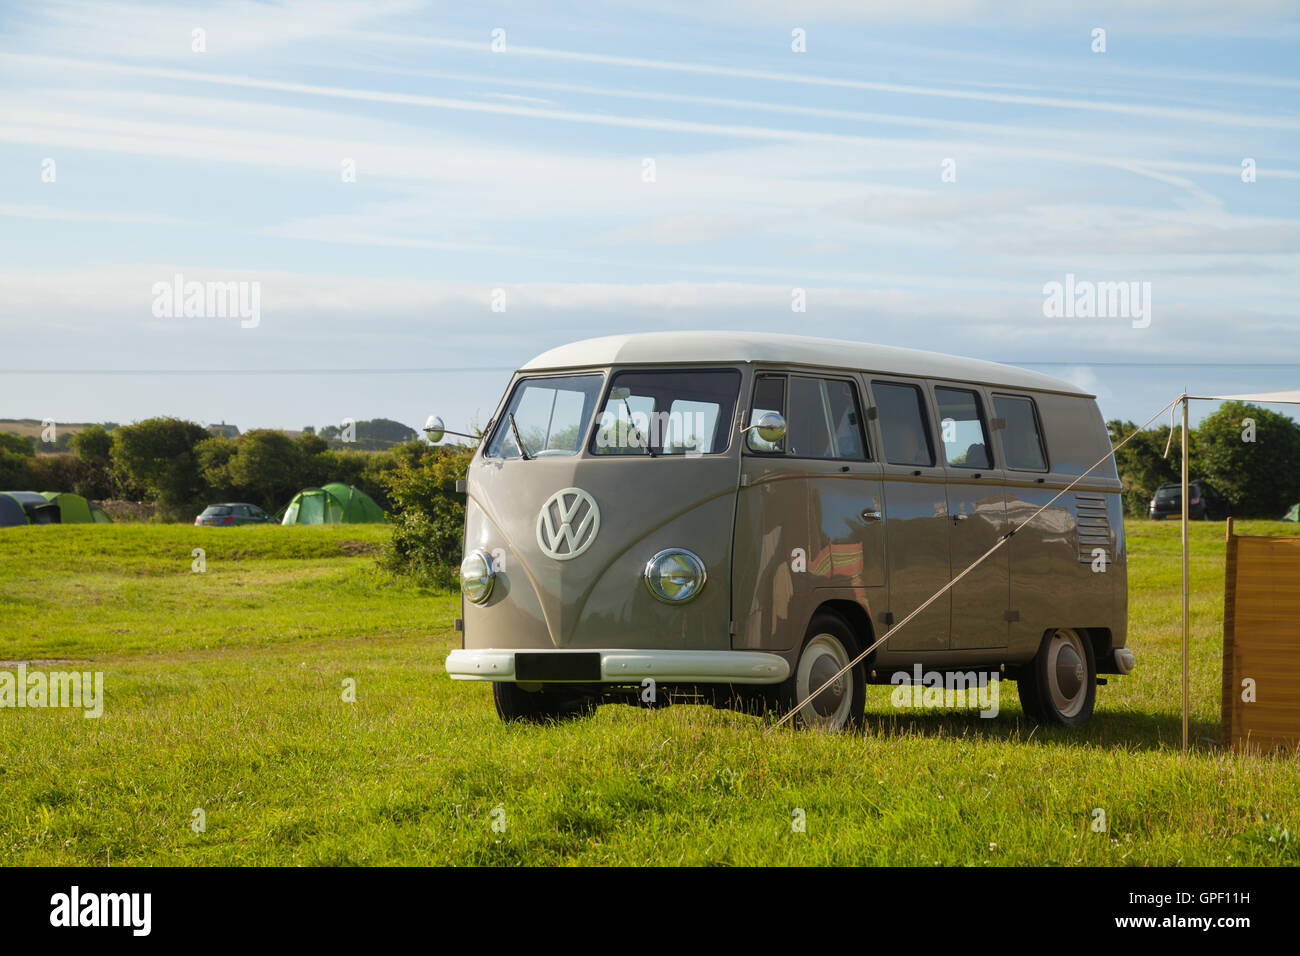 A VW Camper Van and tent in an English campsite. - Stock Image